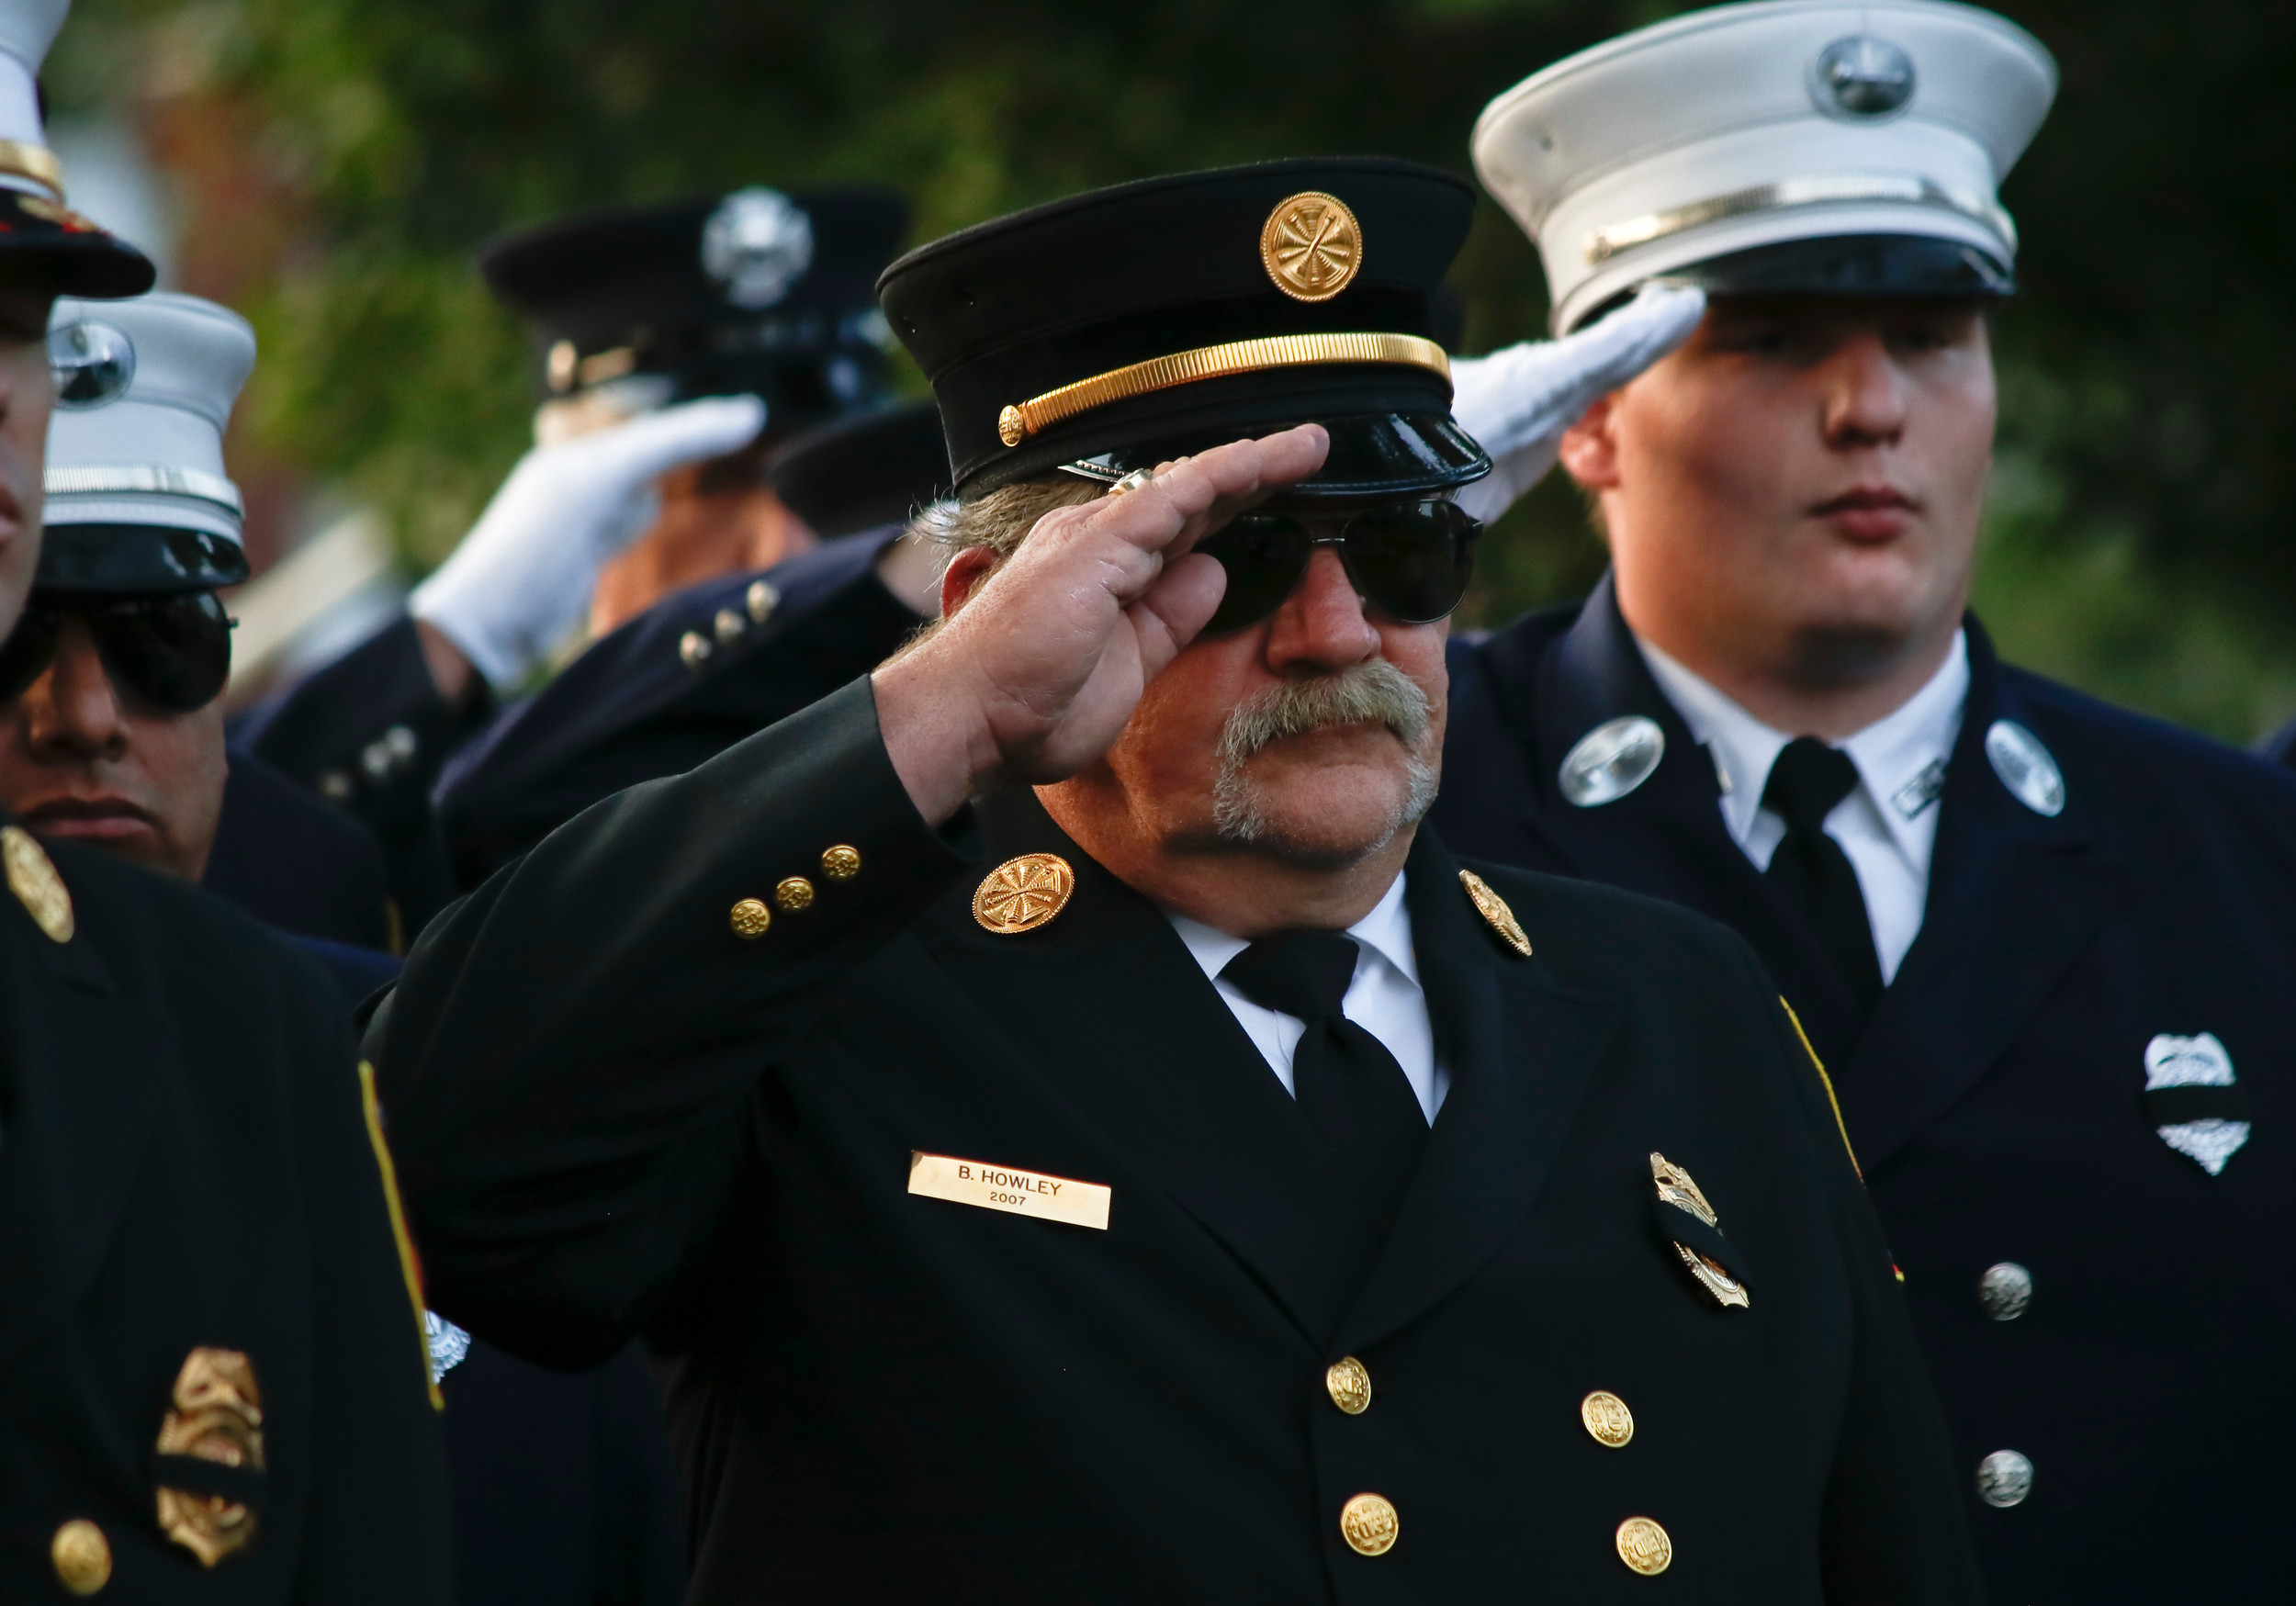 Brian Howley, center, along with the rest of the fire department, saluted during the playing of taps.